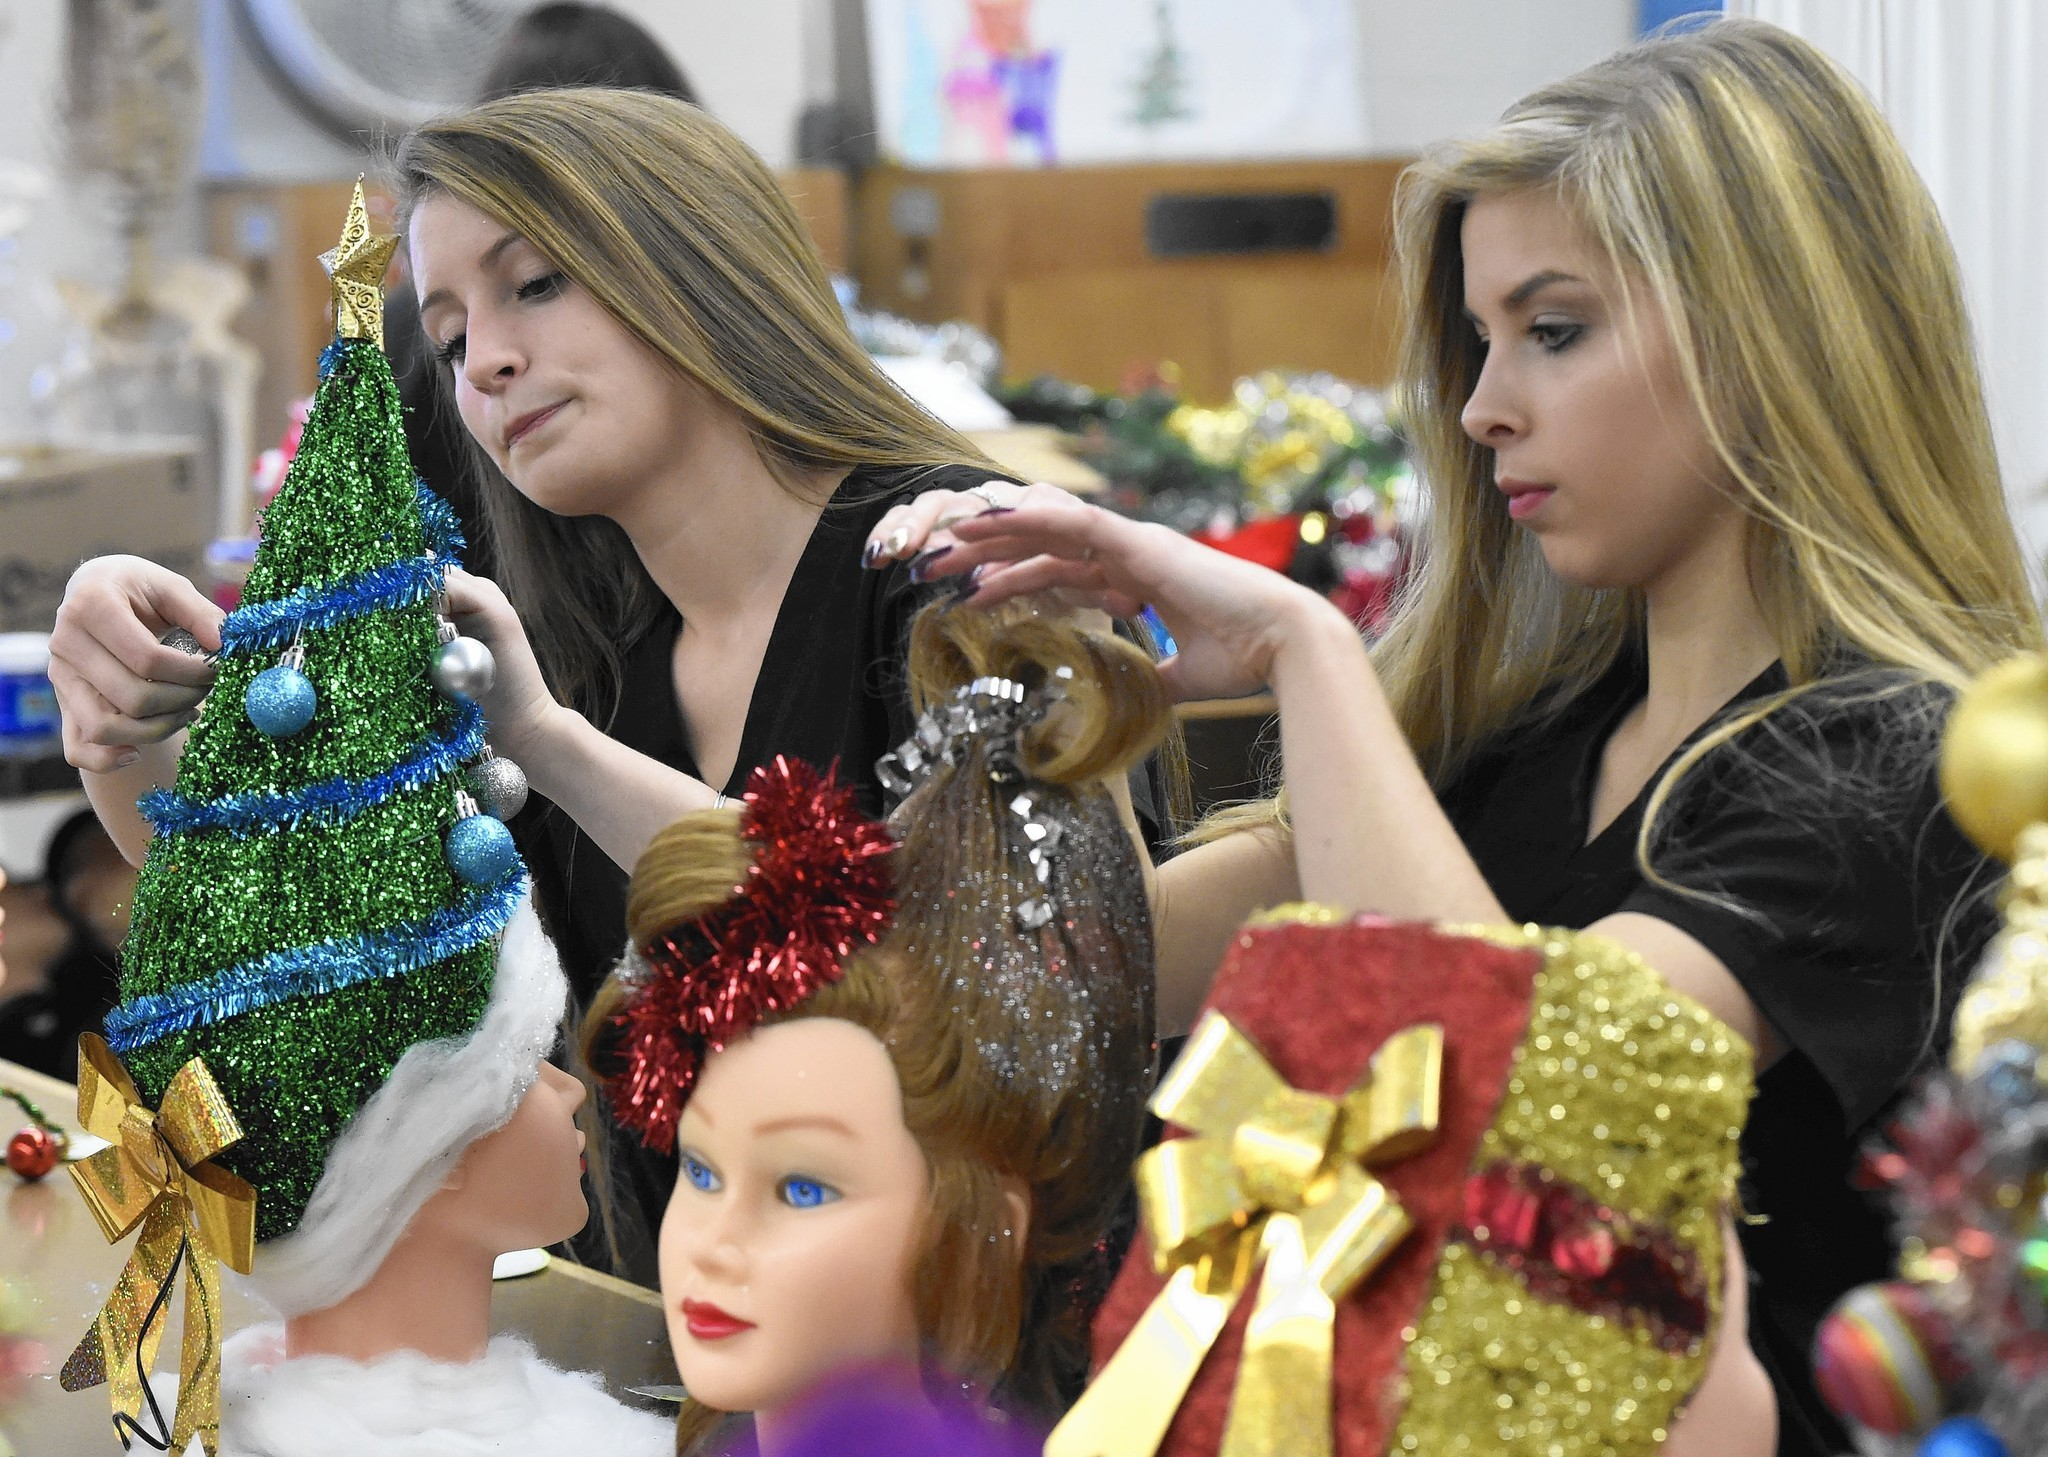 For Whoville hairdo assignment, students create Seuss